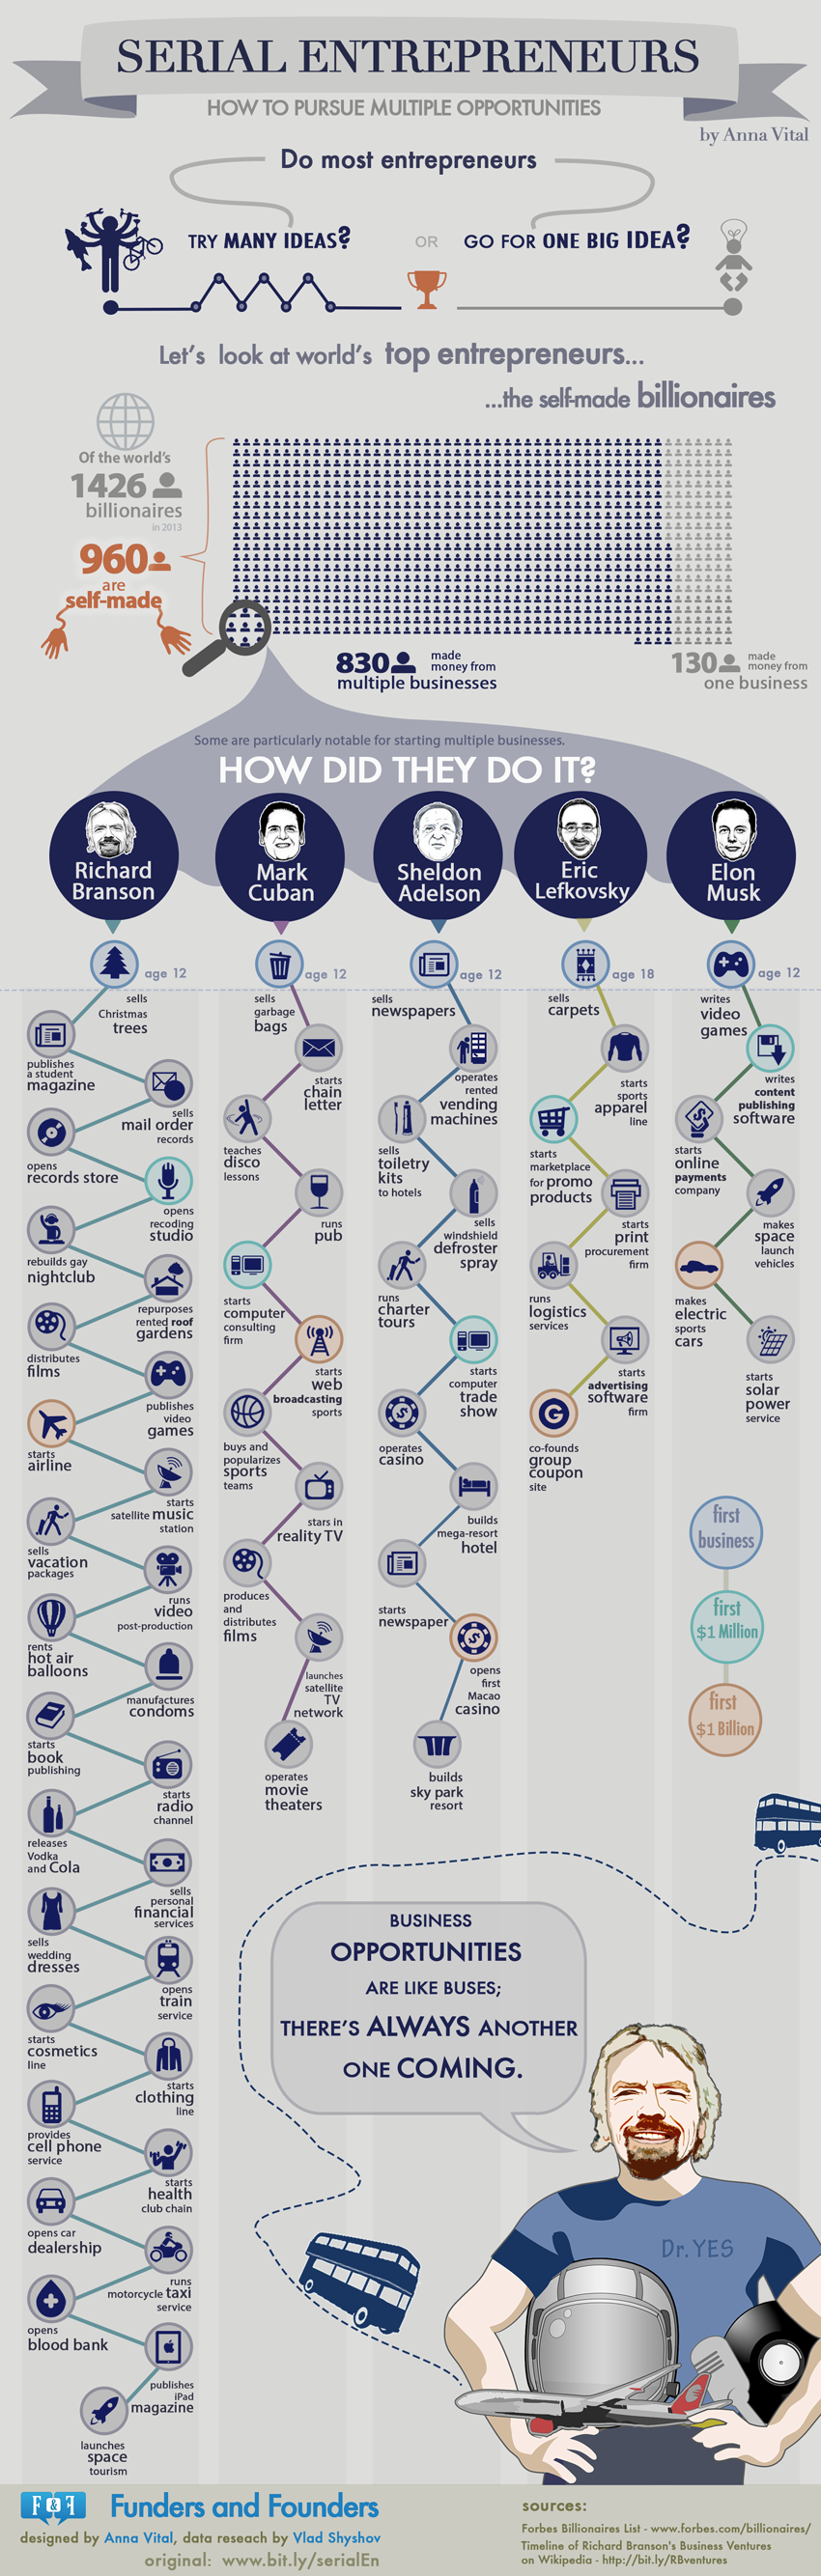 K-28 serial-entrepreneurs-how-to-pursue-multiple-opportunities-infographic